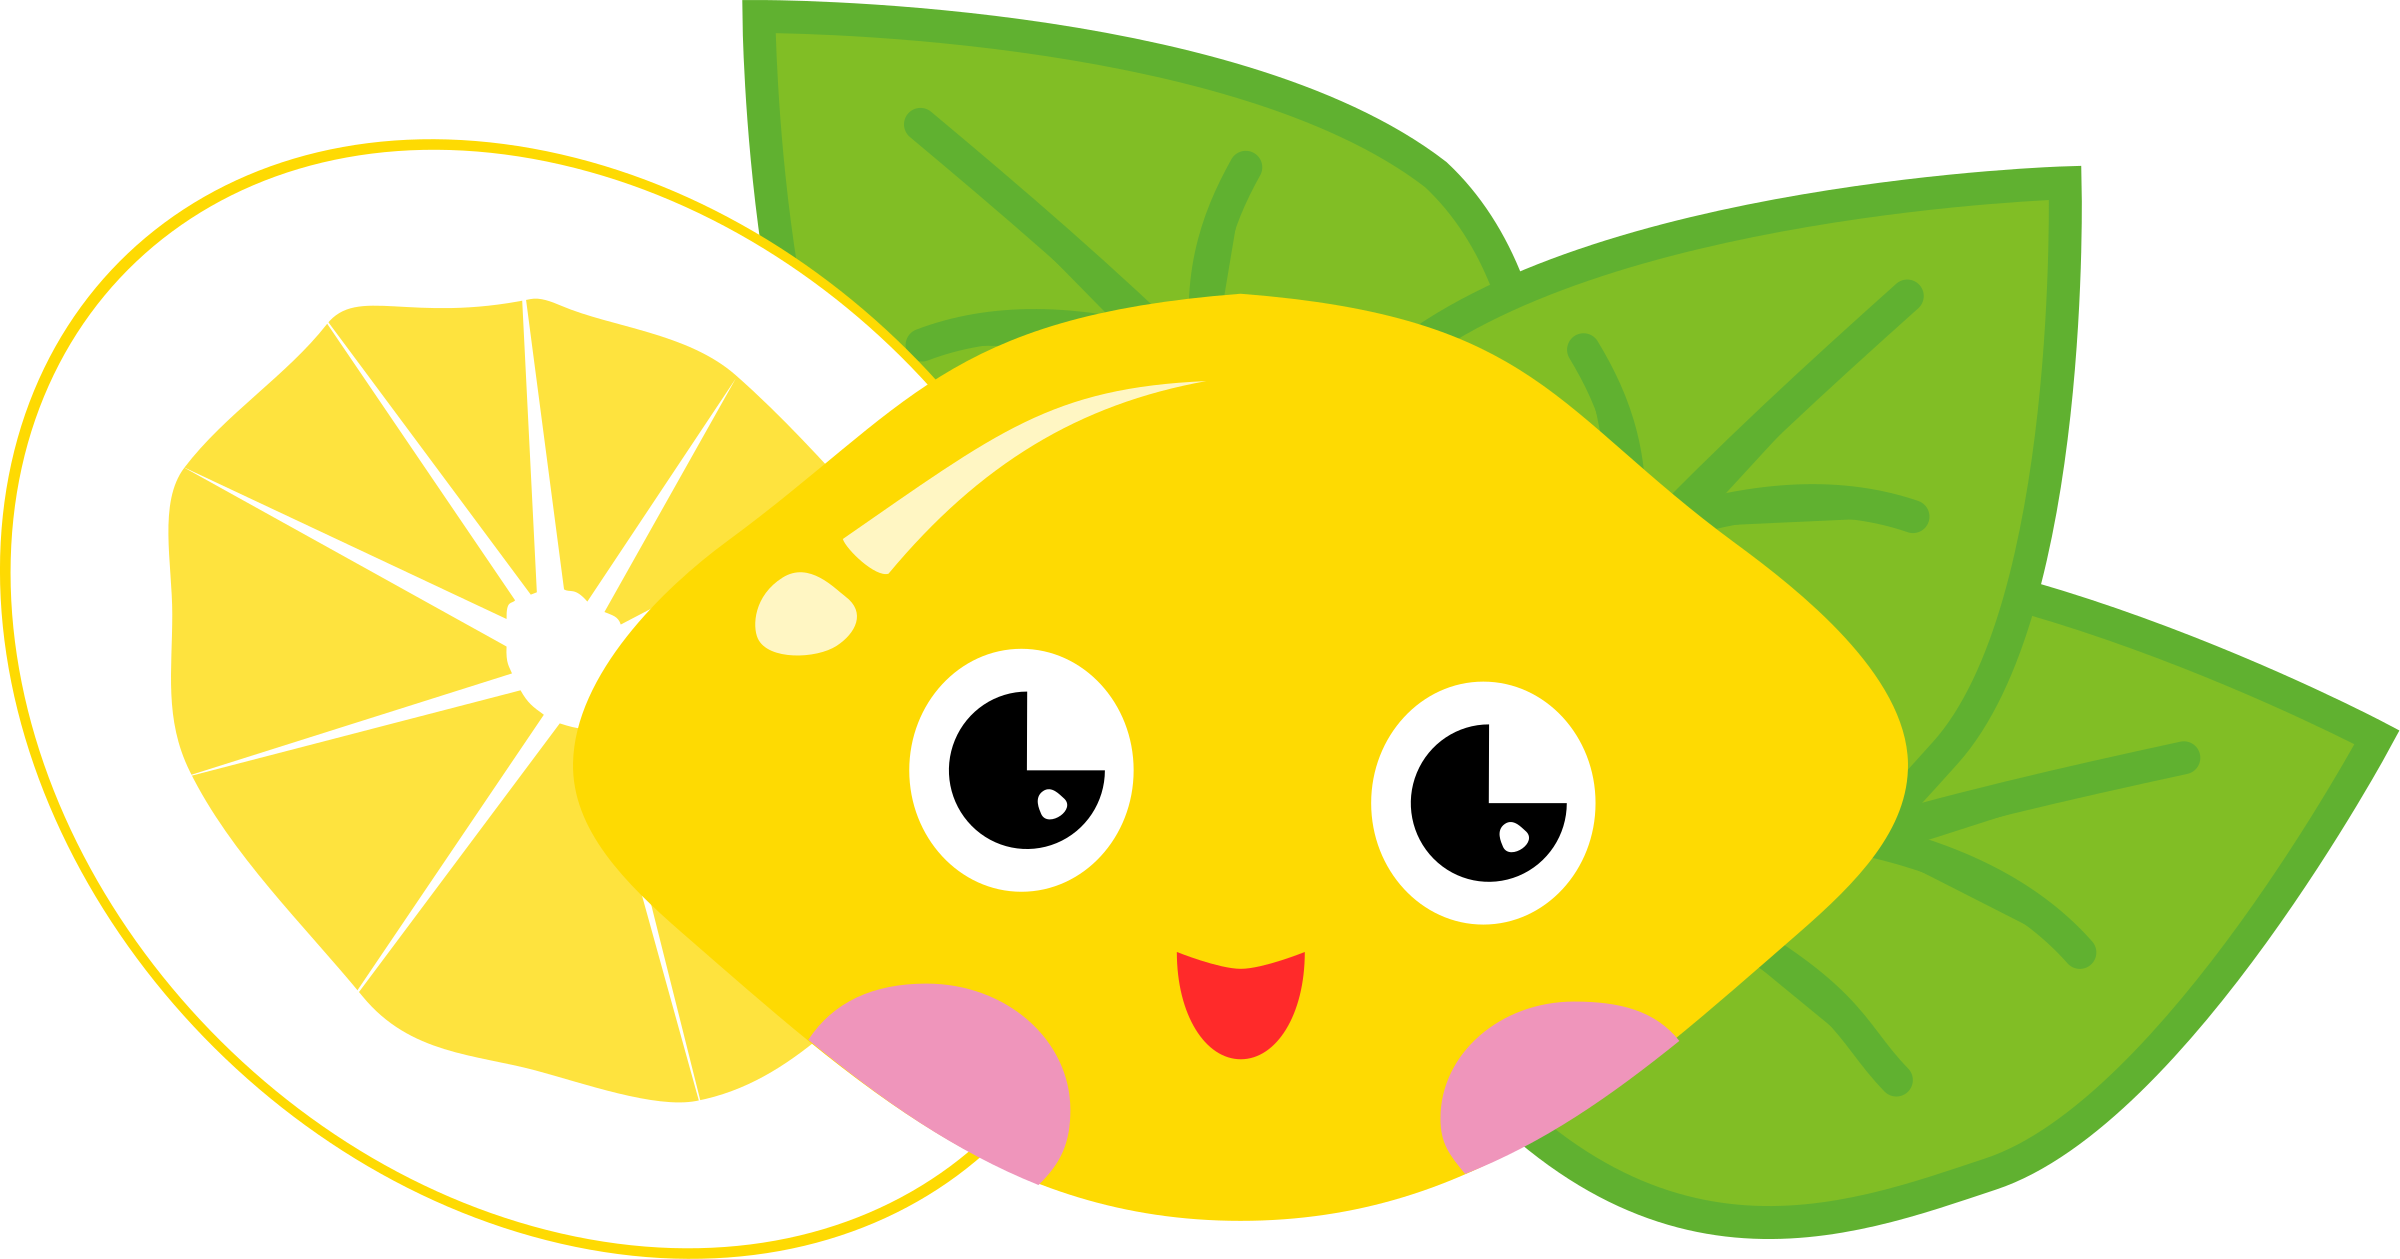 Cartoon group lemon. Lemons clipart face